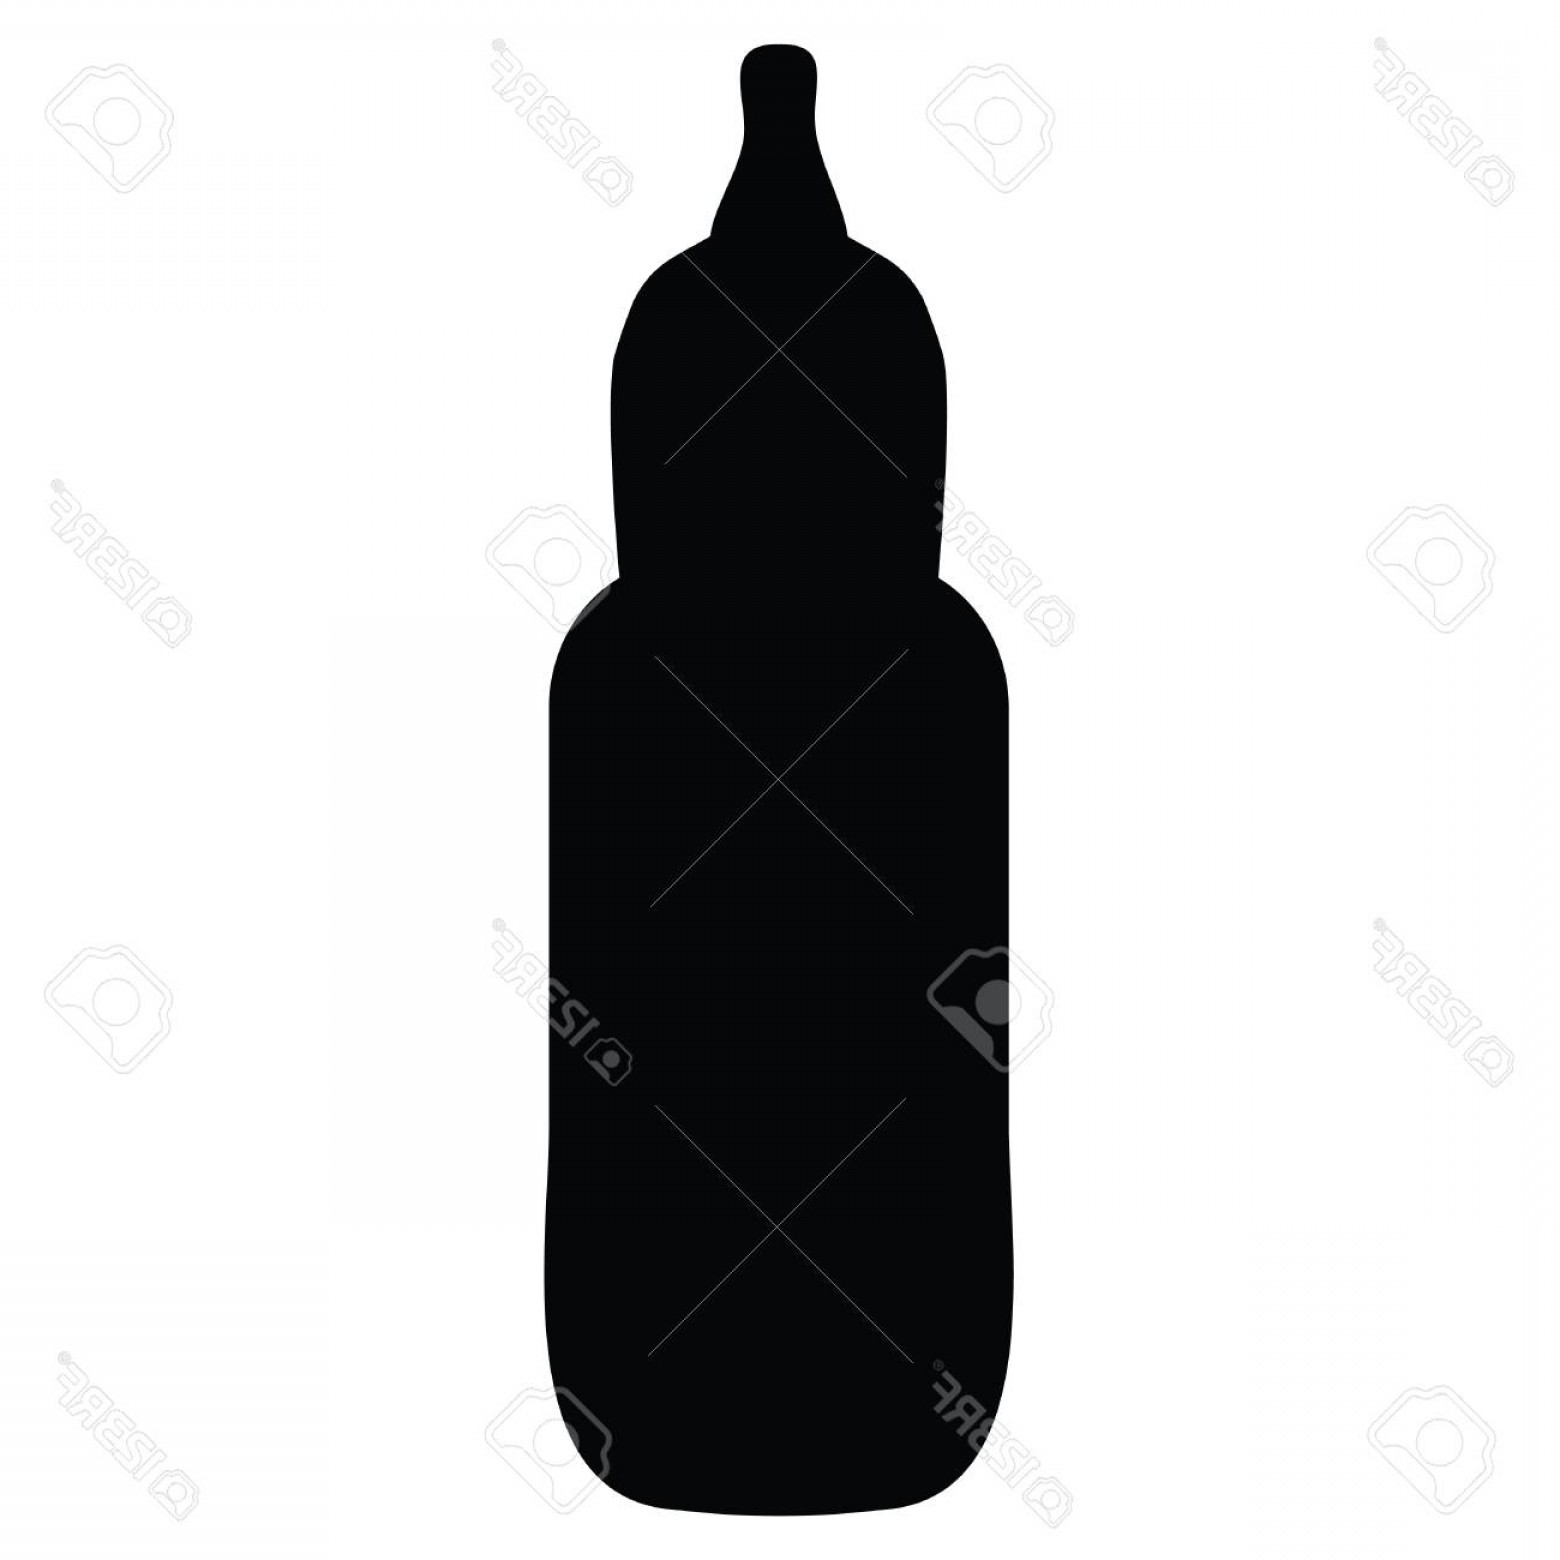 1560x1560 Baby Bottle Silhouette Vector Shopatcloth